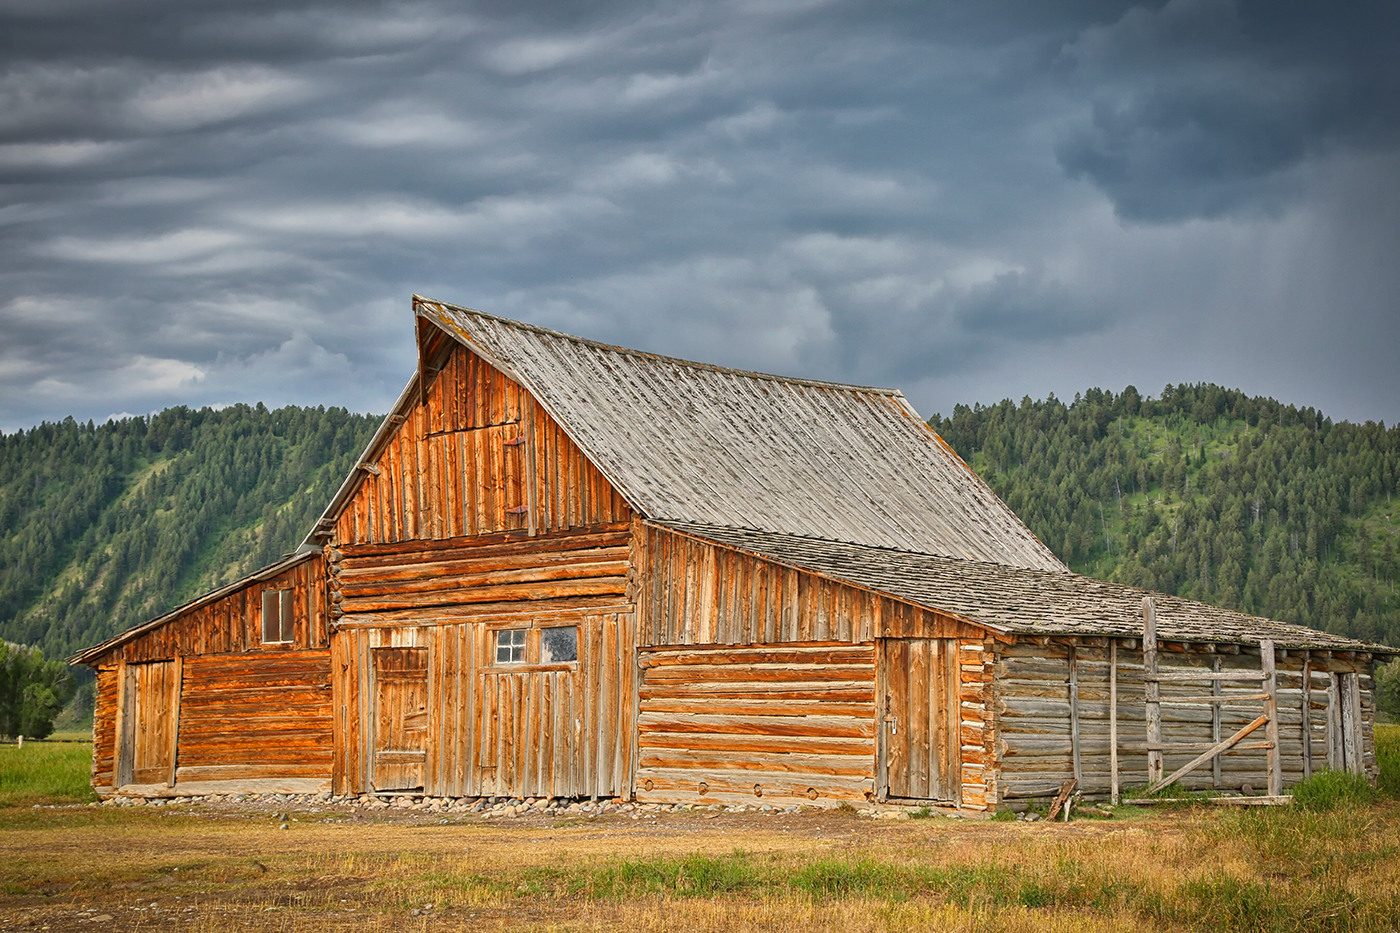 The Most Photographed Barn in the World: T.A. Moulton Barn in Wyoming